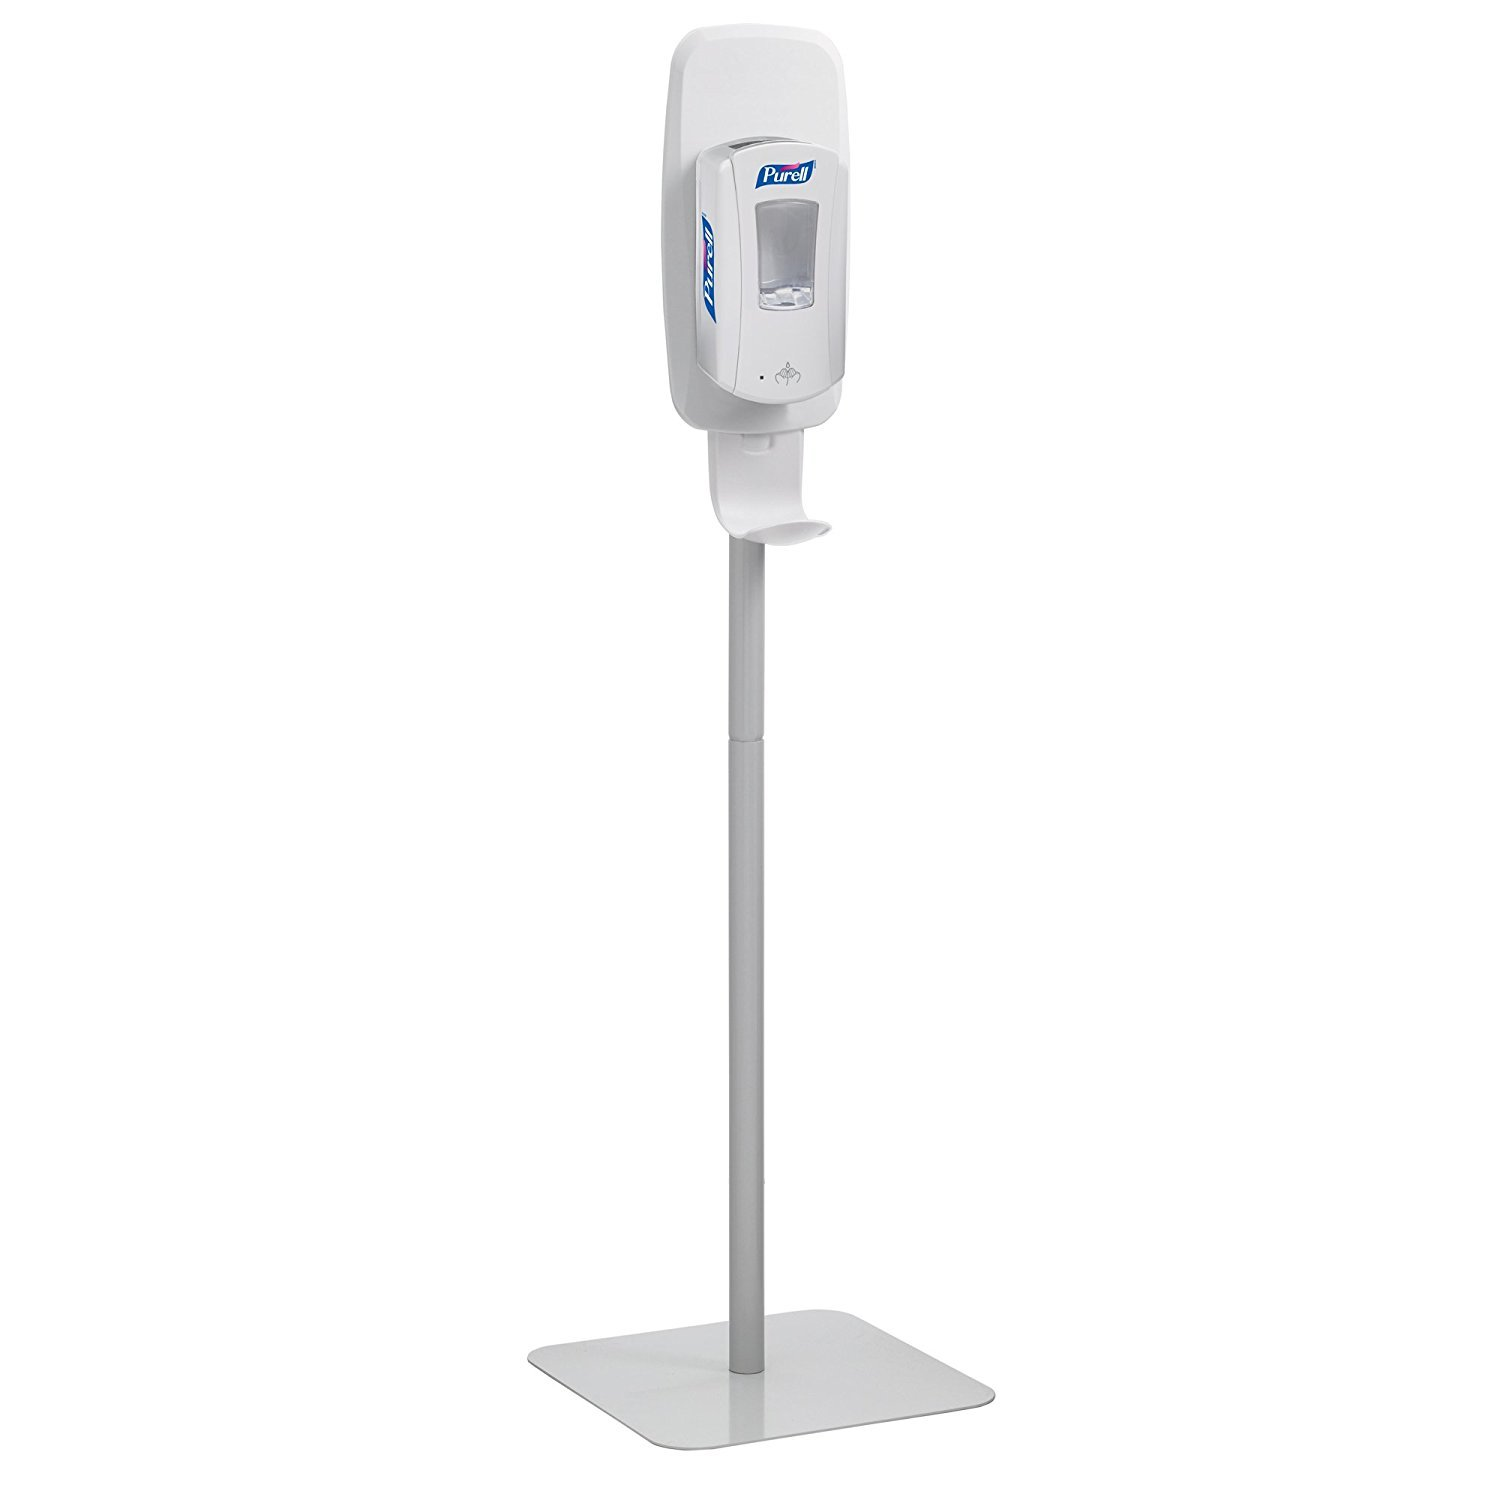 PURELL KLybeg 2424-DS TFX White Touch Free Floor Stand, 2 Units by Purell